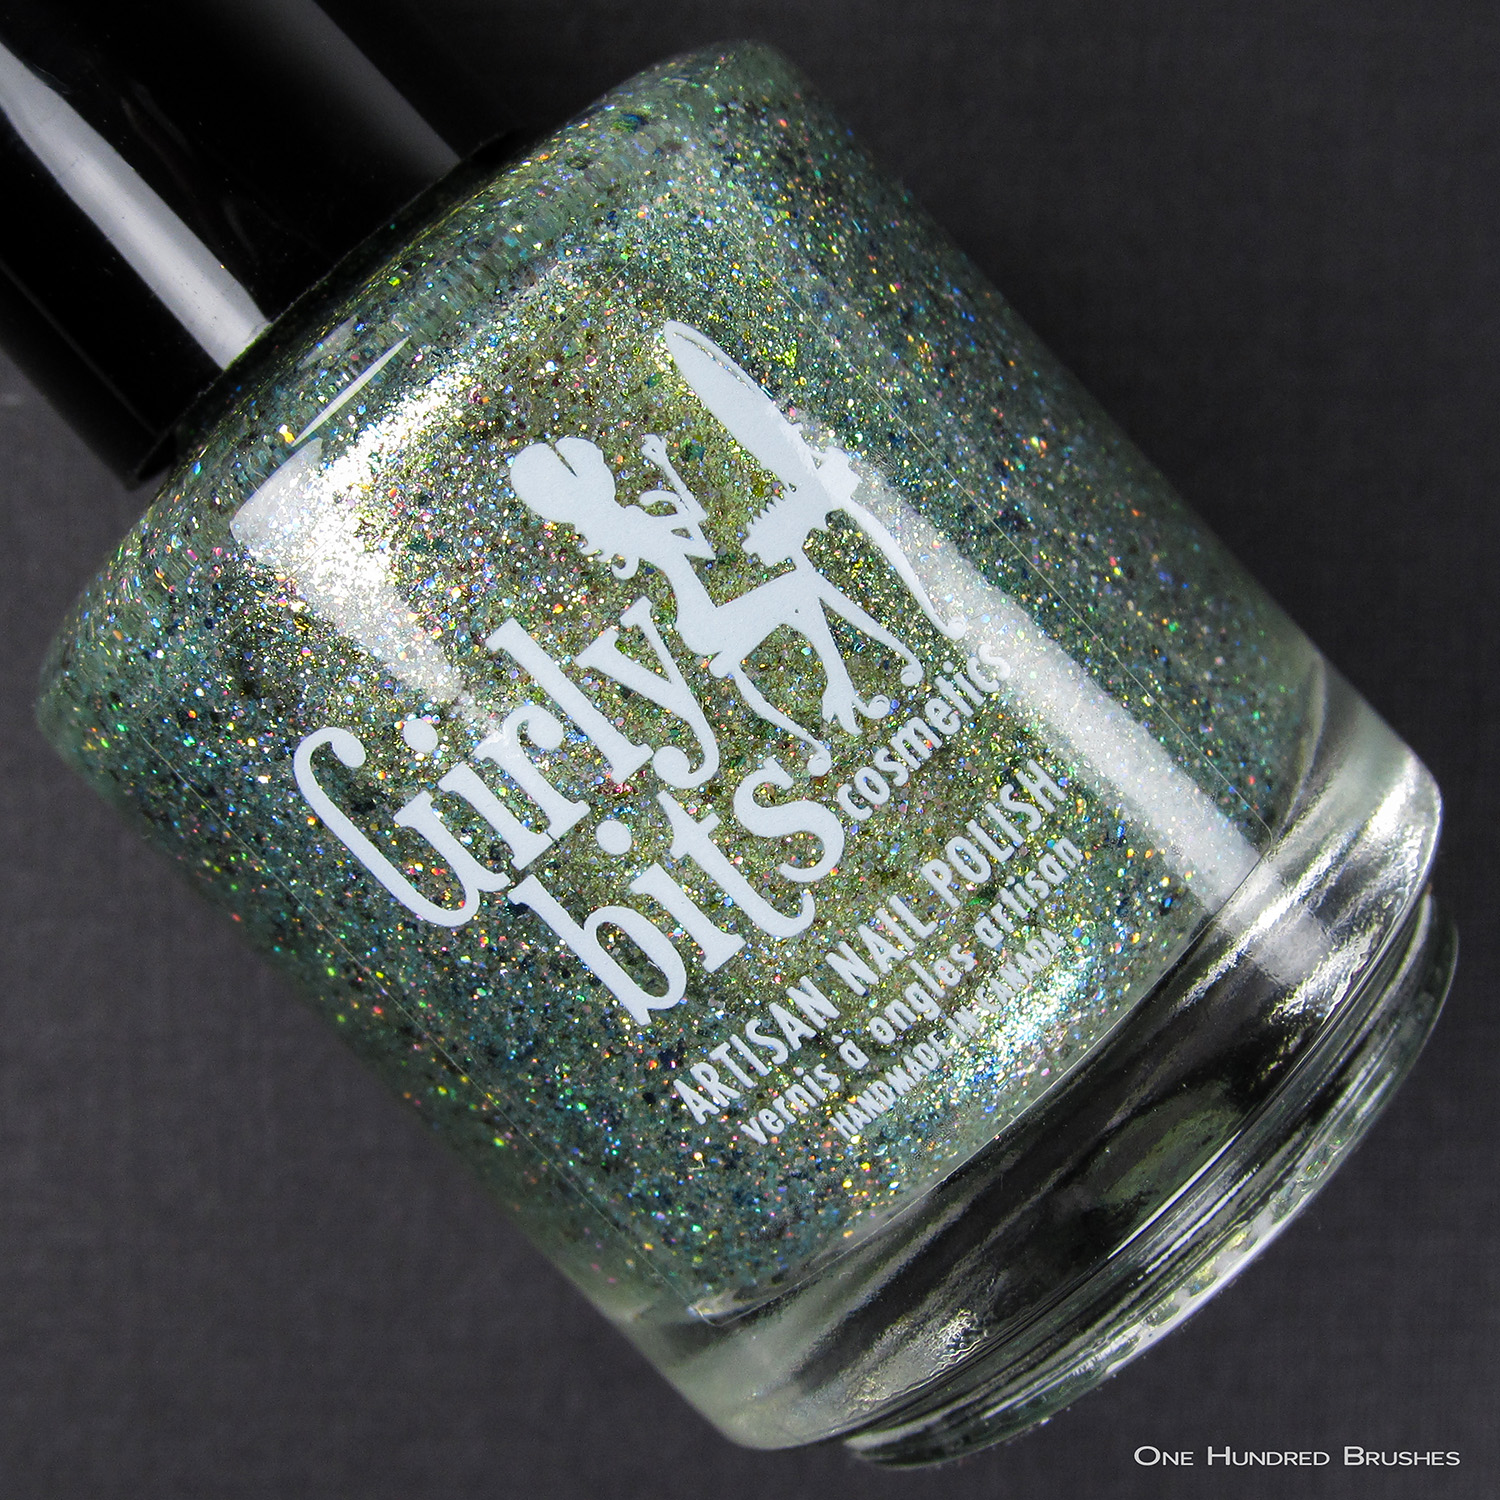 Underwater Secrets - Girly Bits Cosmetics - HHC Aug 2018